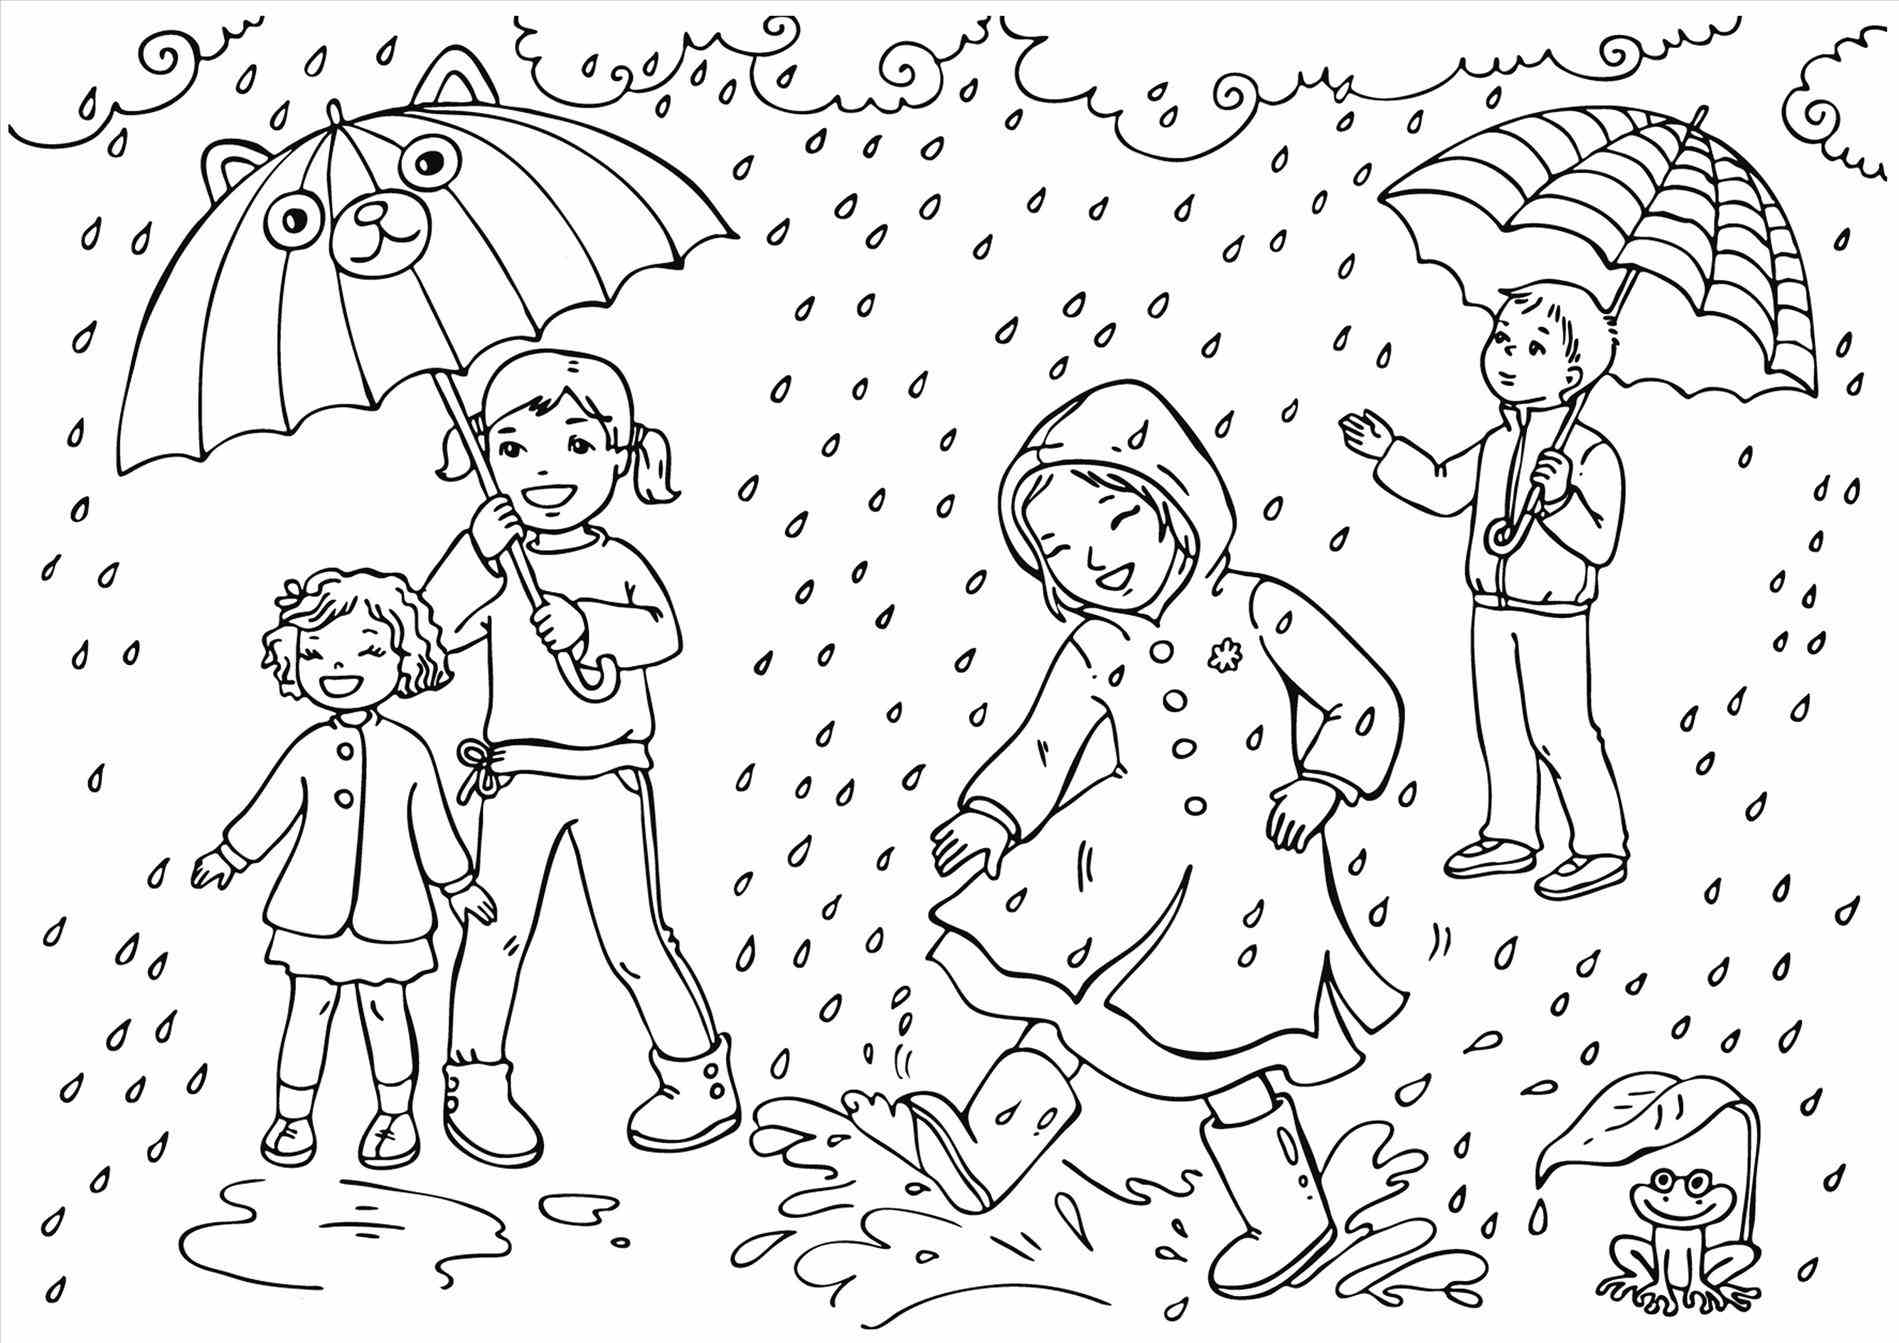 Kids Enjoying Spring Showers